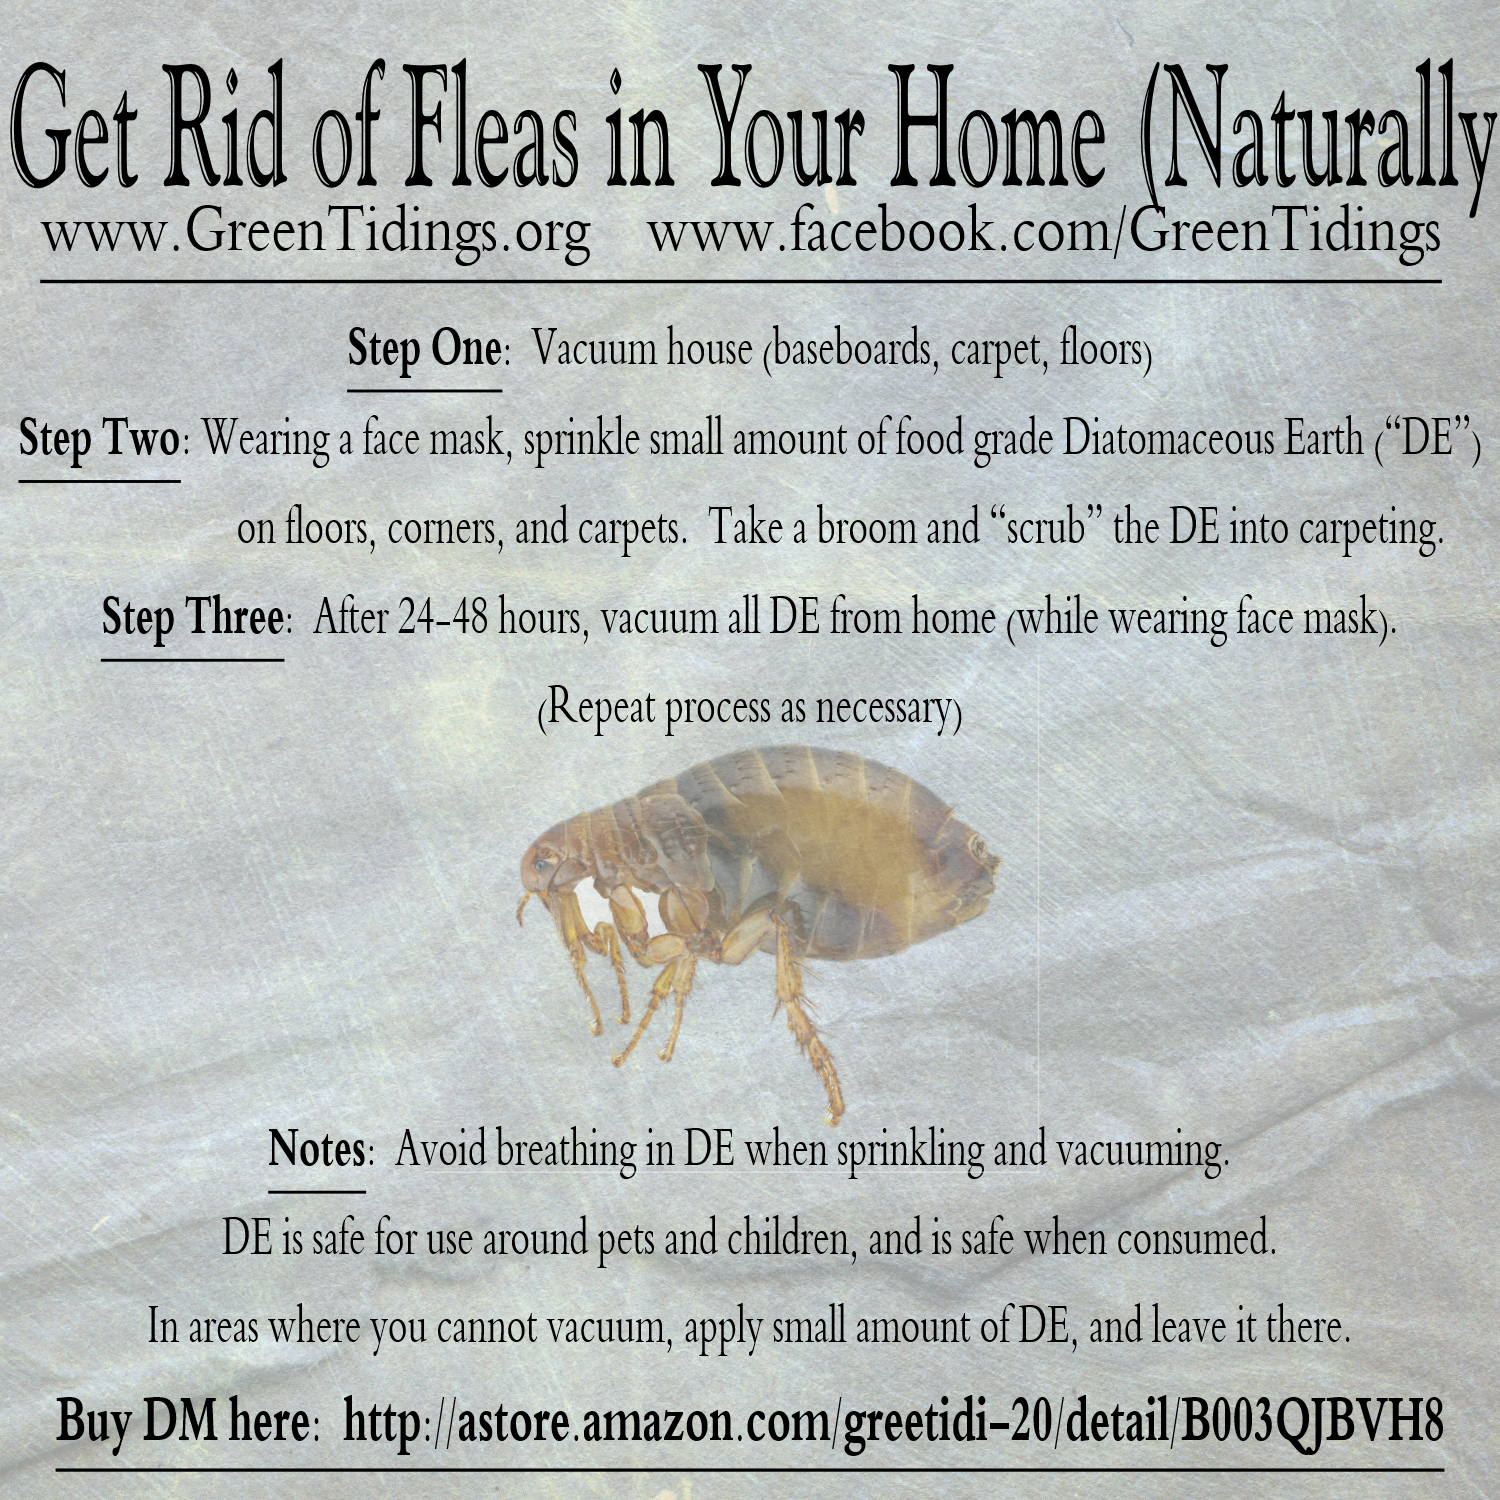 Kill dog fleas in house get rid fleas your house ccuart Image collections